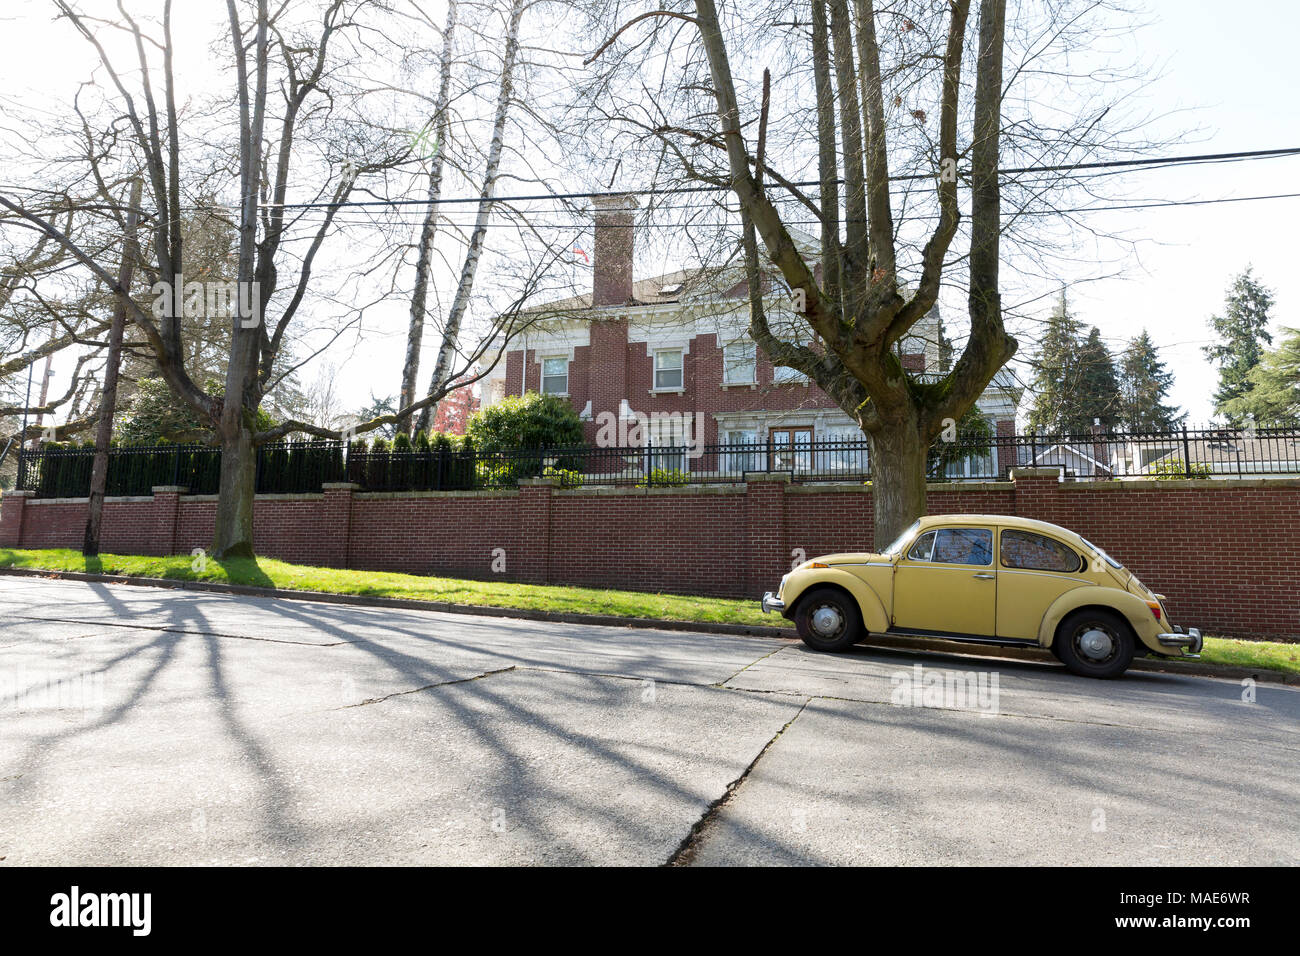 Seattle, Washington: The Consulate General's residence in Seattle's Madison Park neighborhood on March 31, 2018. The United States has ordered the closure of the consulate in downtown Seattle by April 2. The Consulate General, Valery Timashov has until April 24 to vacate the residence in the historic Samuel Hyde House. Credit: Paul Christian Gordon/Alamy Live News - Stock Image